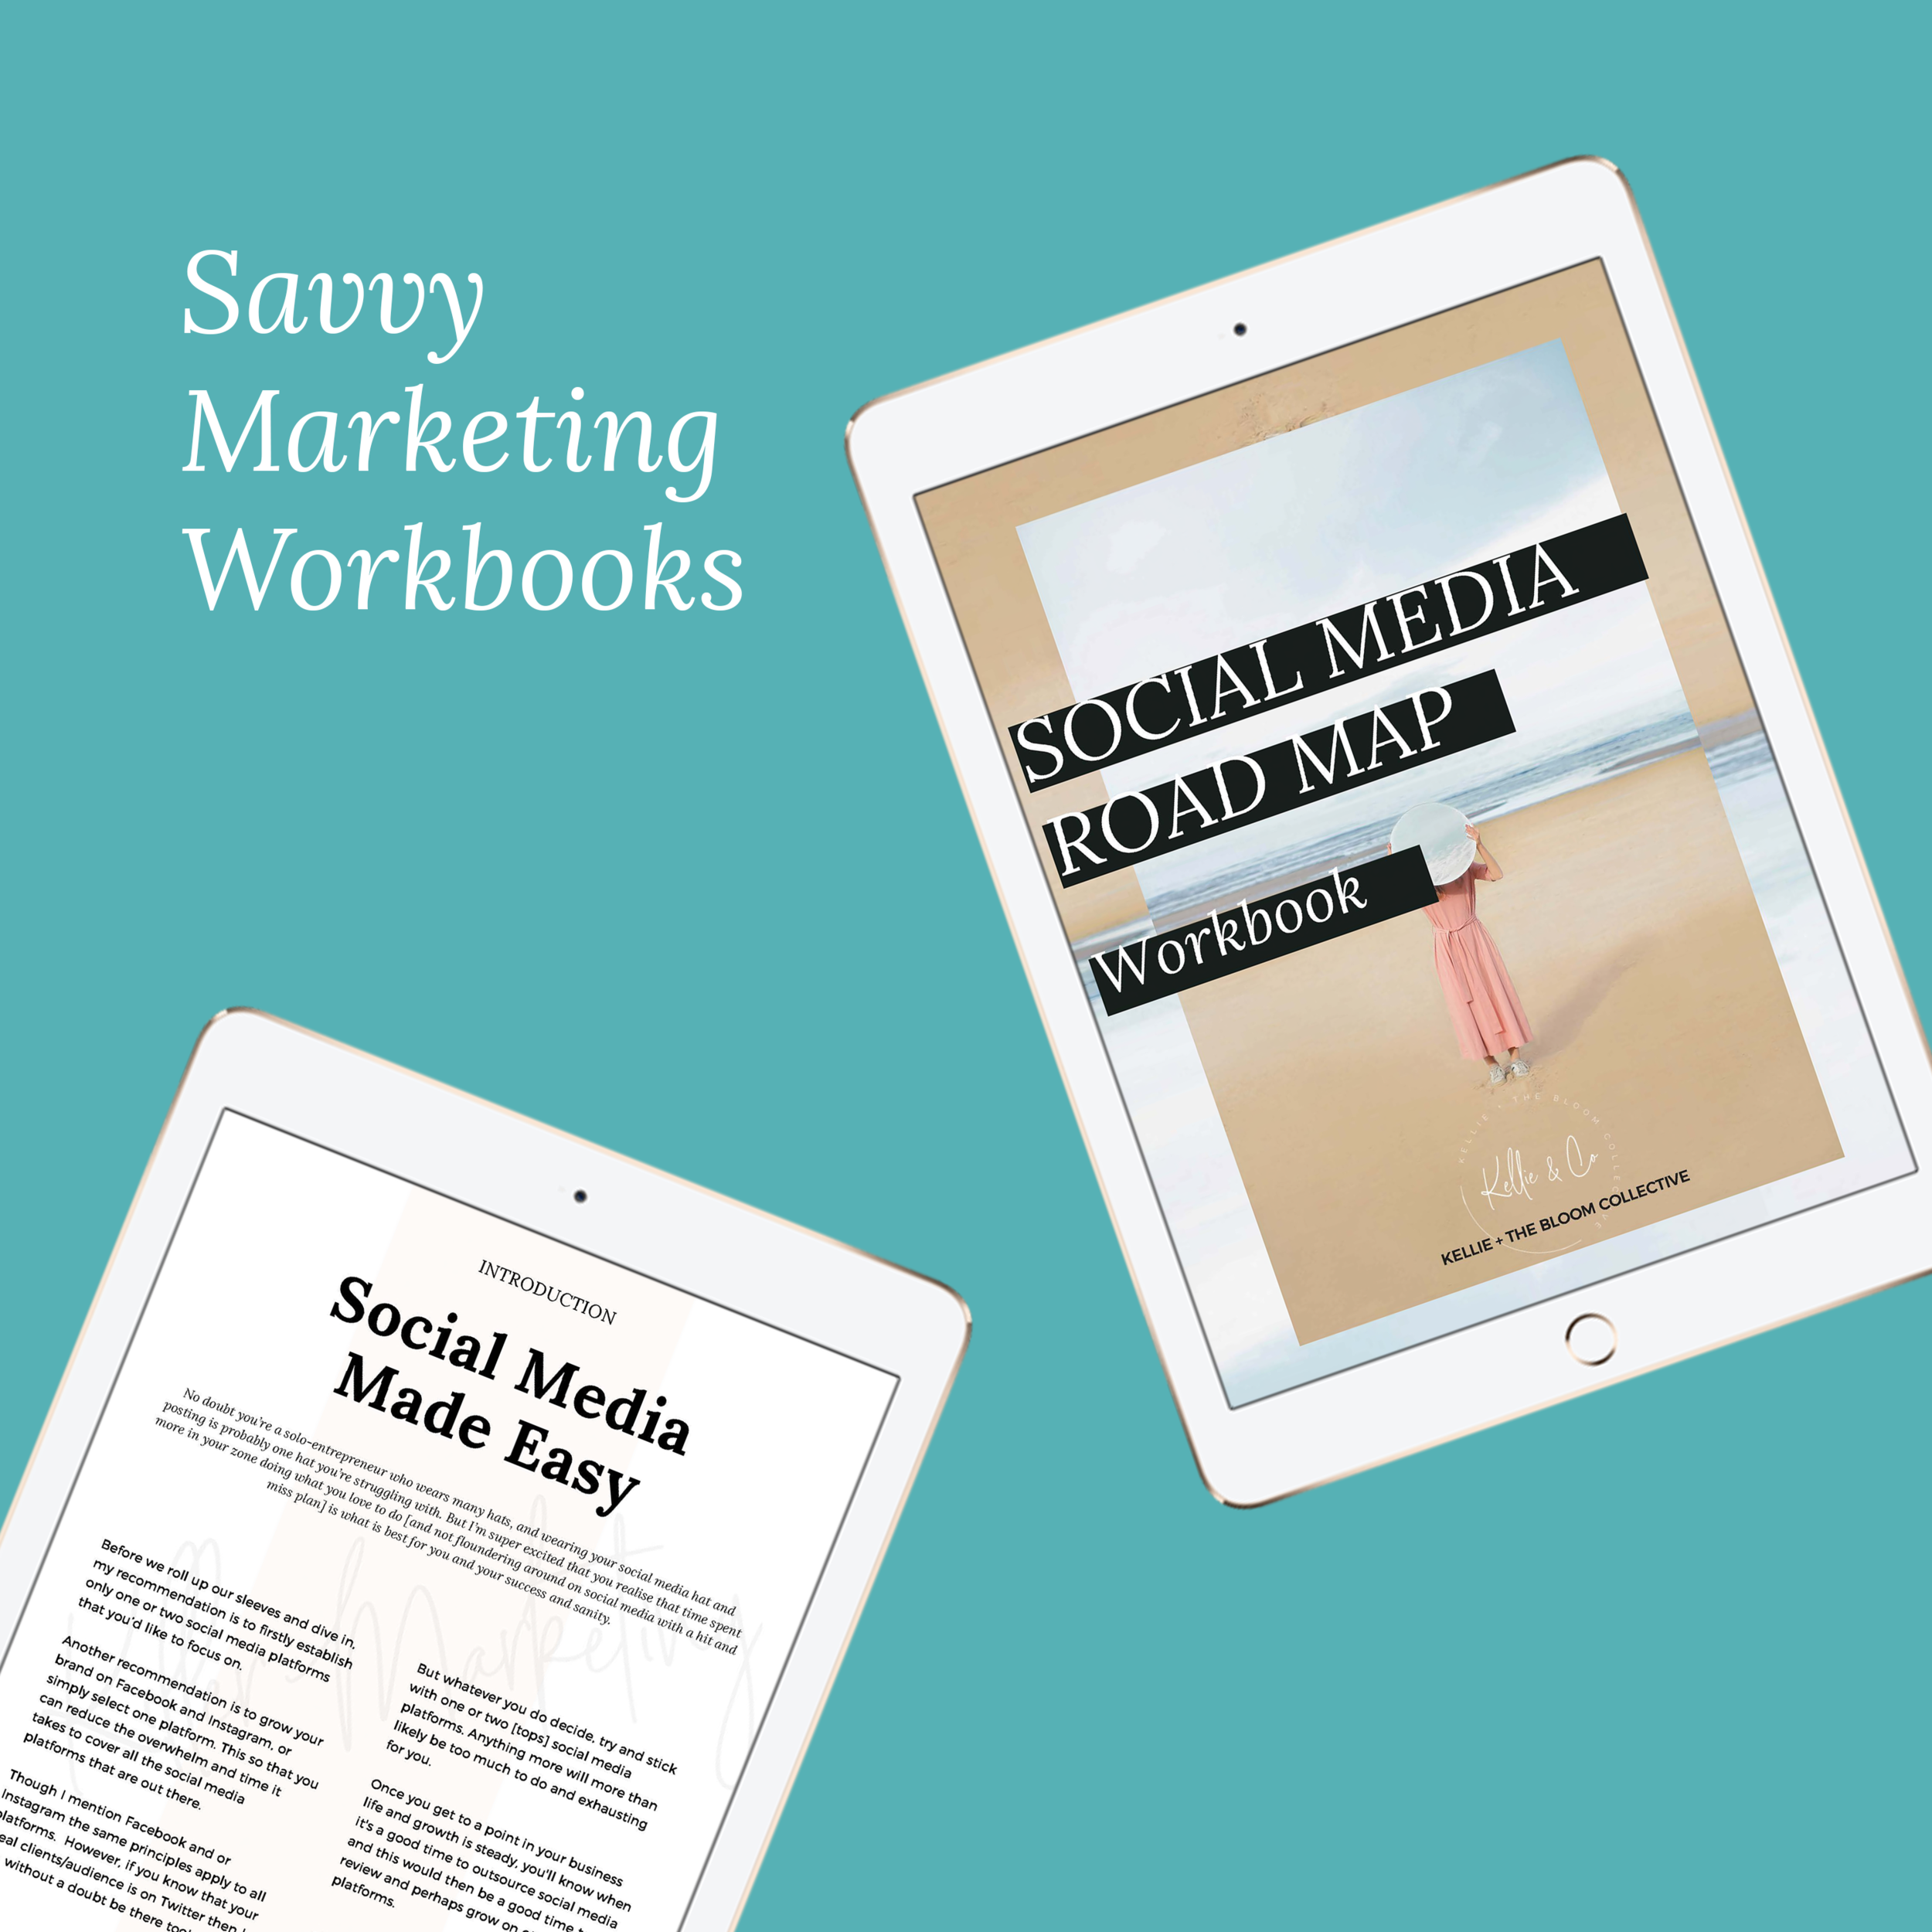 savvy marketing kellieandco the bloom collective workbooks